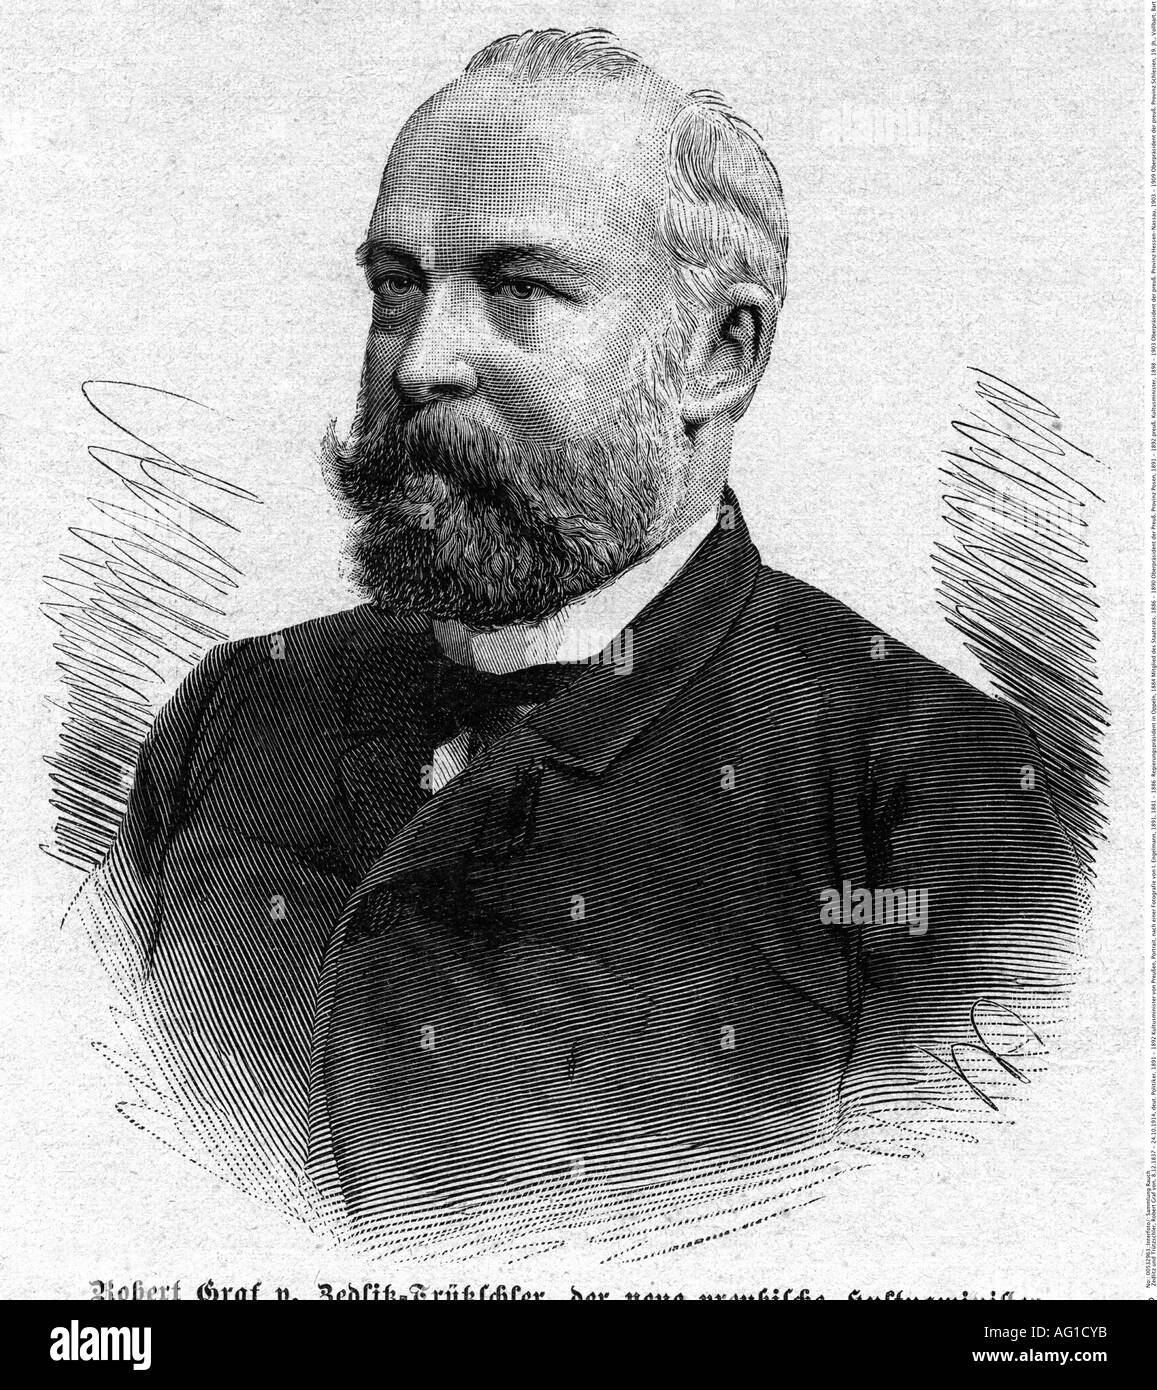 Zedlitz und Trützschler, Robert Graf von, 8.12.1837 - 24.10.1914, German politician, 1891 - 1892 Secretary of State for Culture of Prussia, engraving, based on a photo from I. Engelmann, 1891, Additional-Rights-Clearances-NA - Stock Image